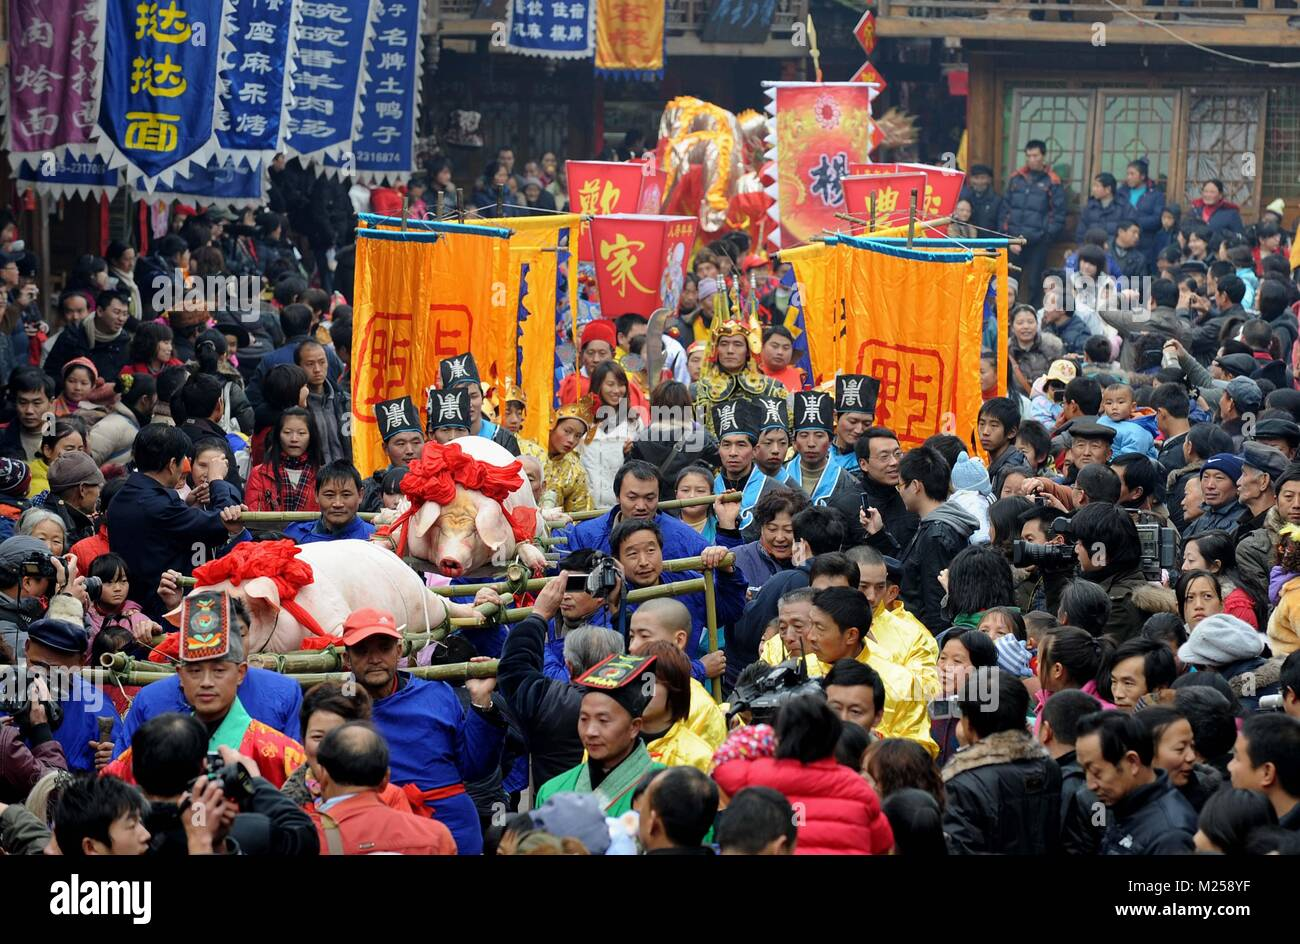 (180205) -- BEIJING, Feb. 5, 2018 (Xinhua) -- File photo taken on Dec. 19, 2009 shows people taking part in a traditional Stock Photo